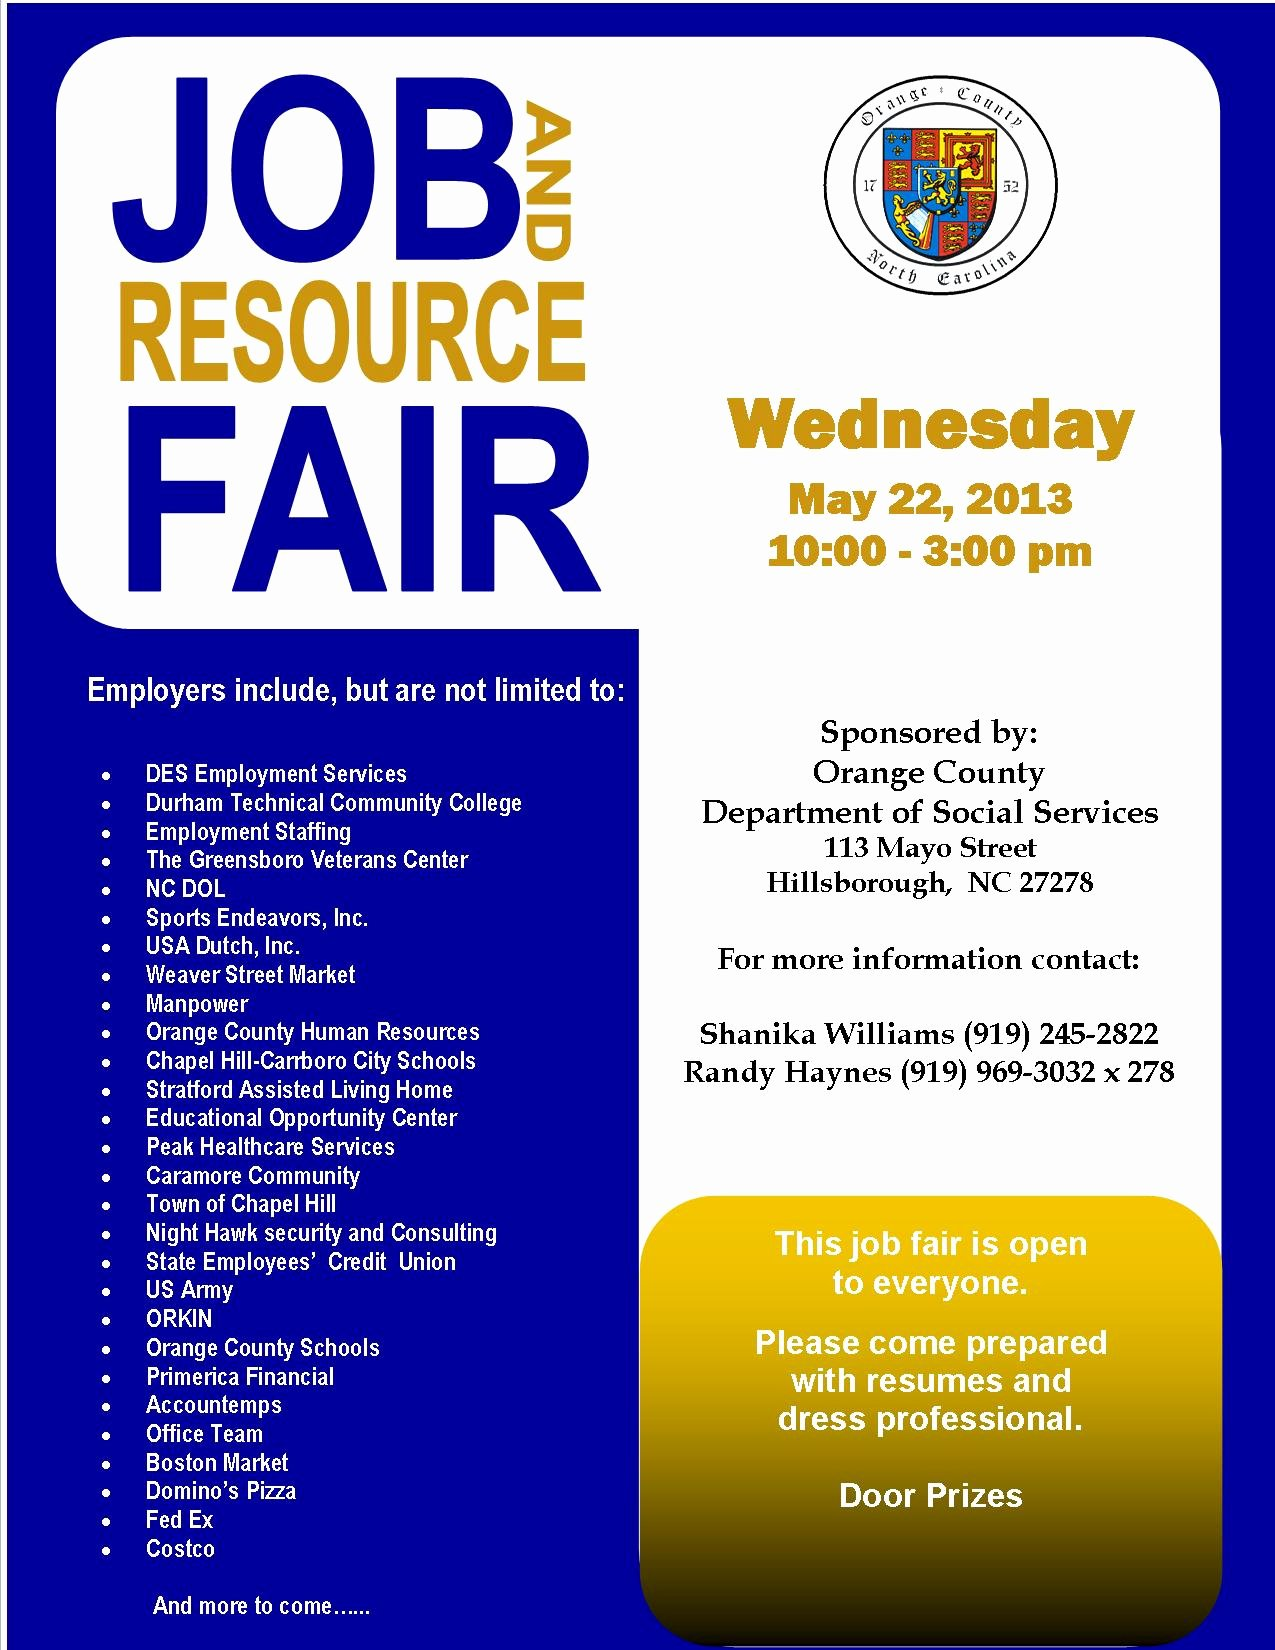 Job Fair Flyer Template Free Elegant Continuing Education